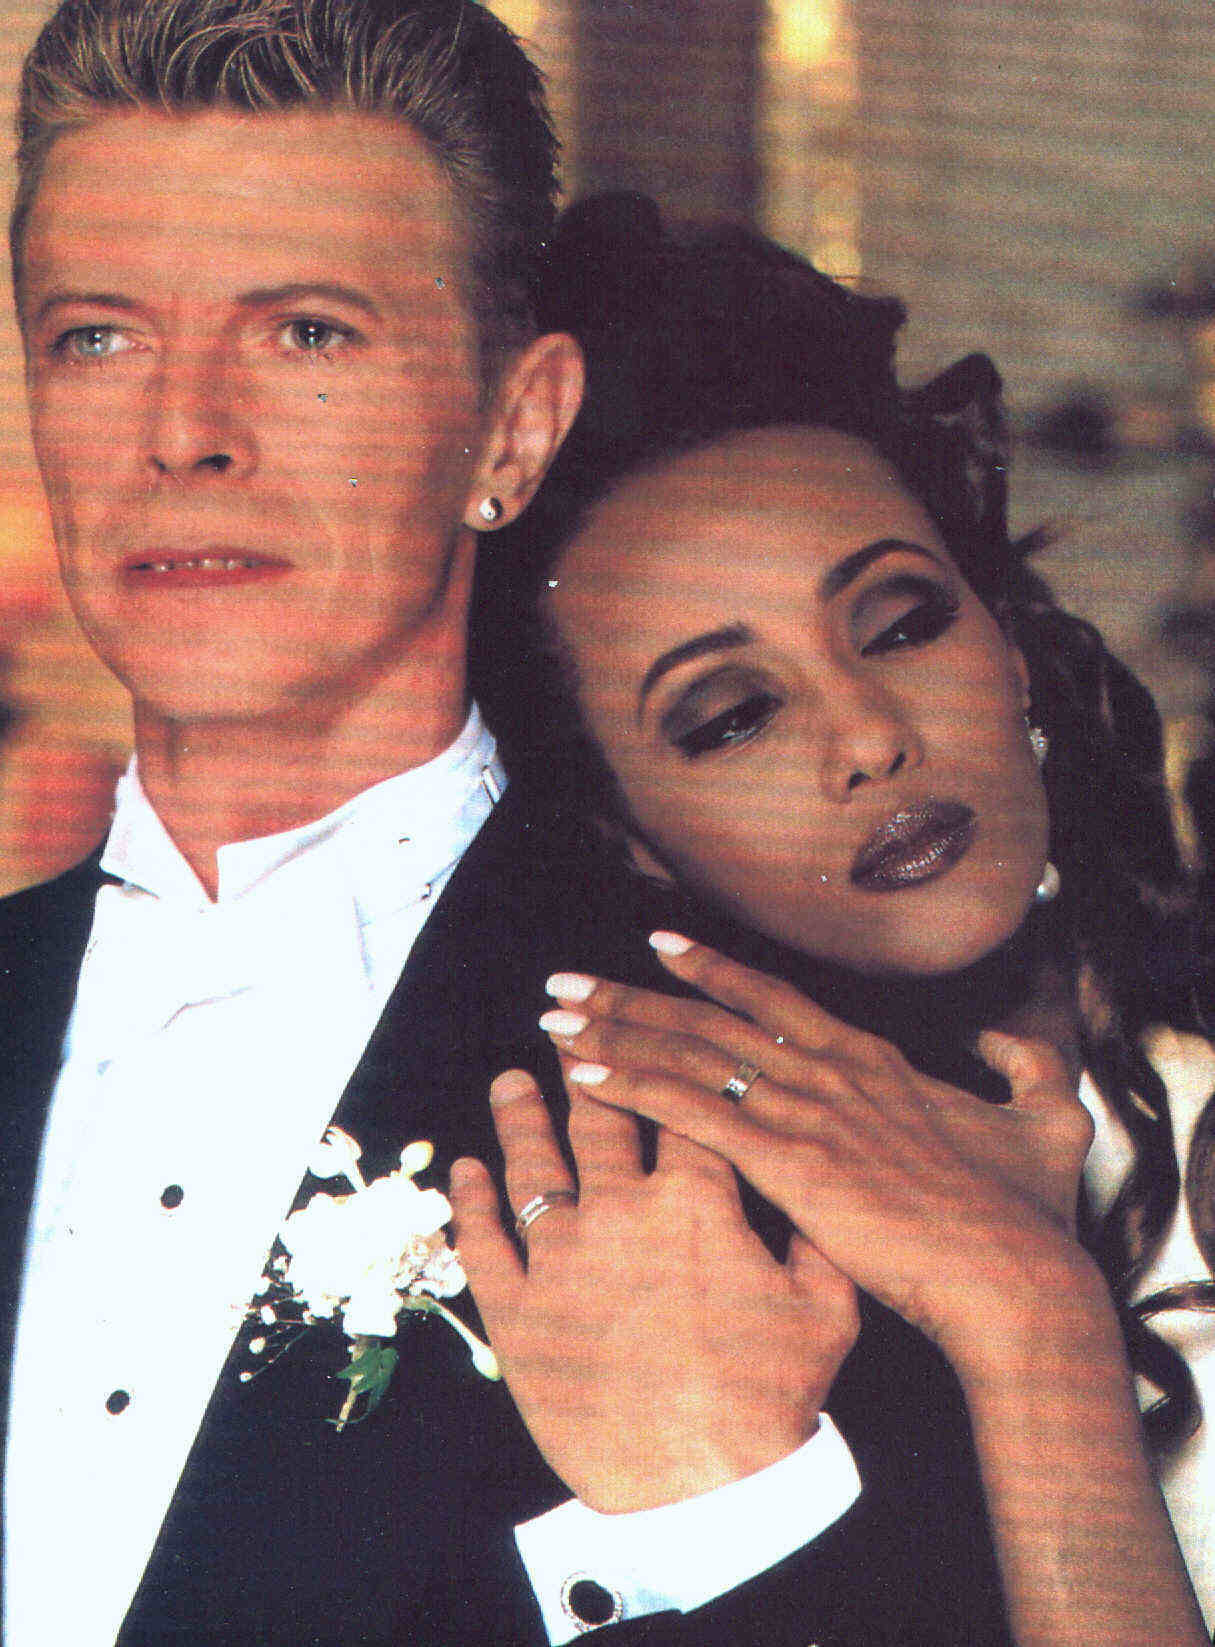 What a pretty picture of David and Iman!